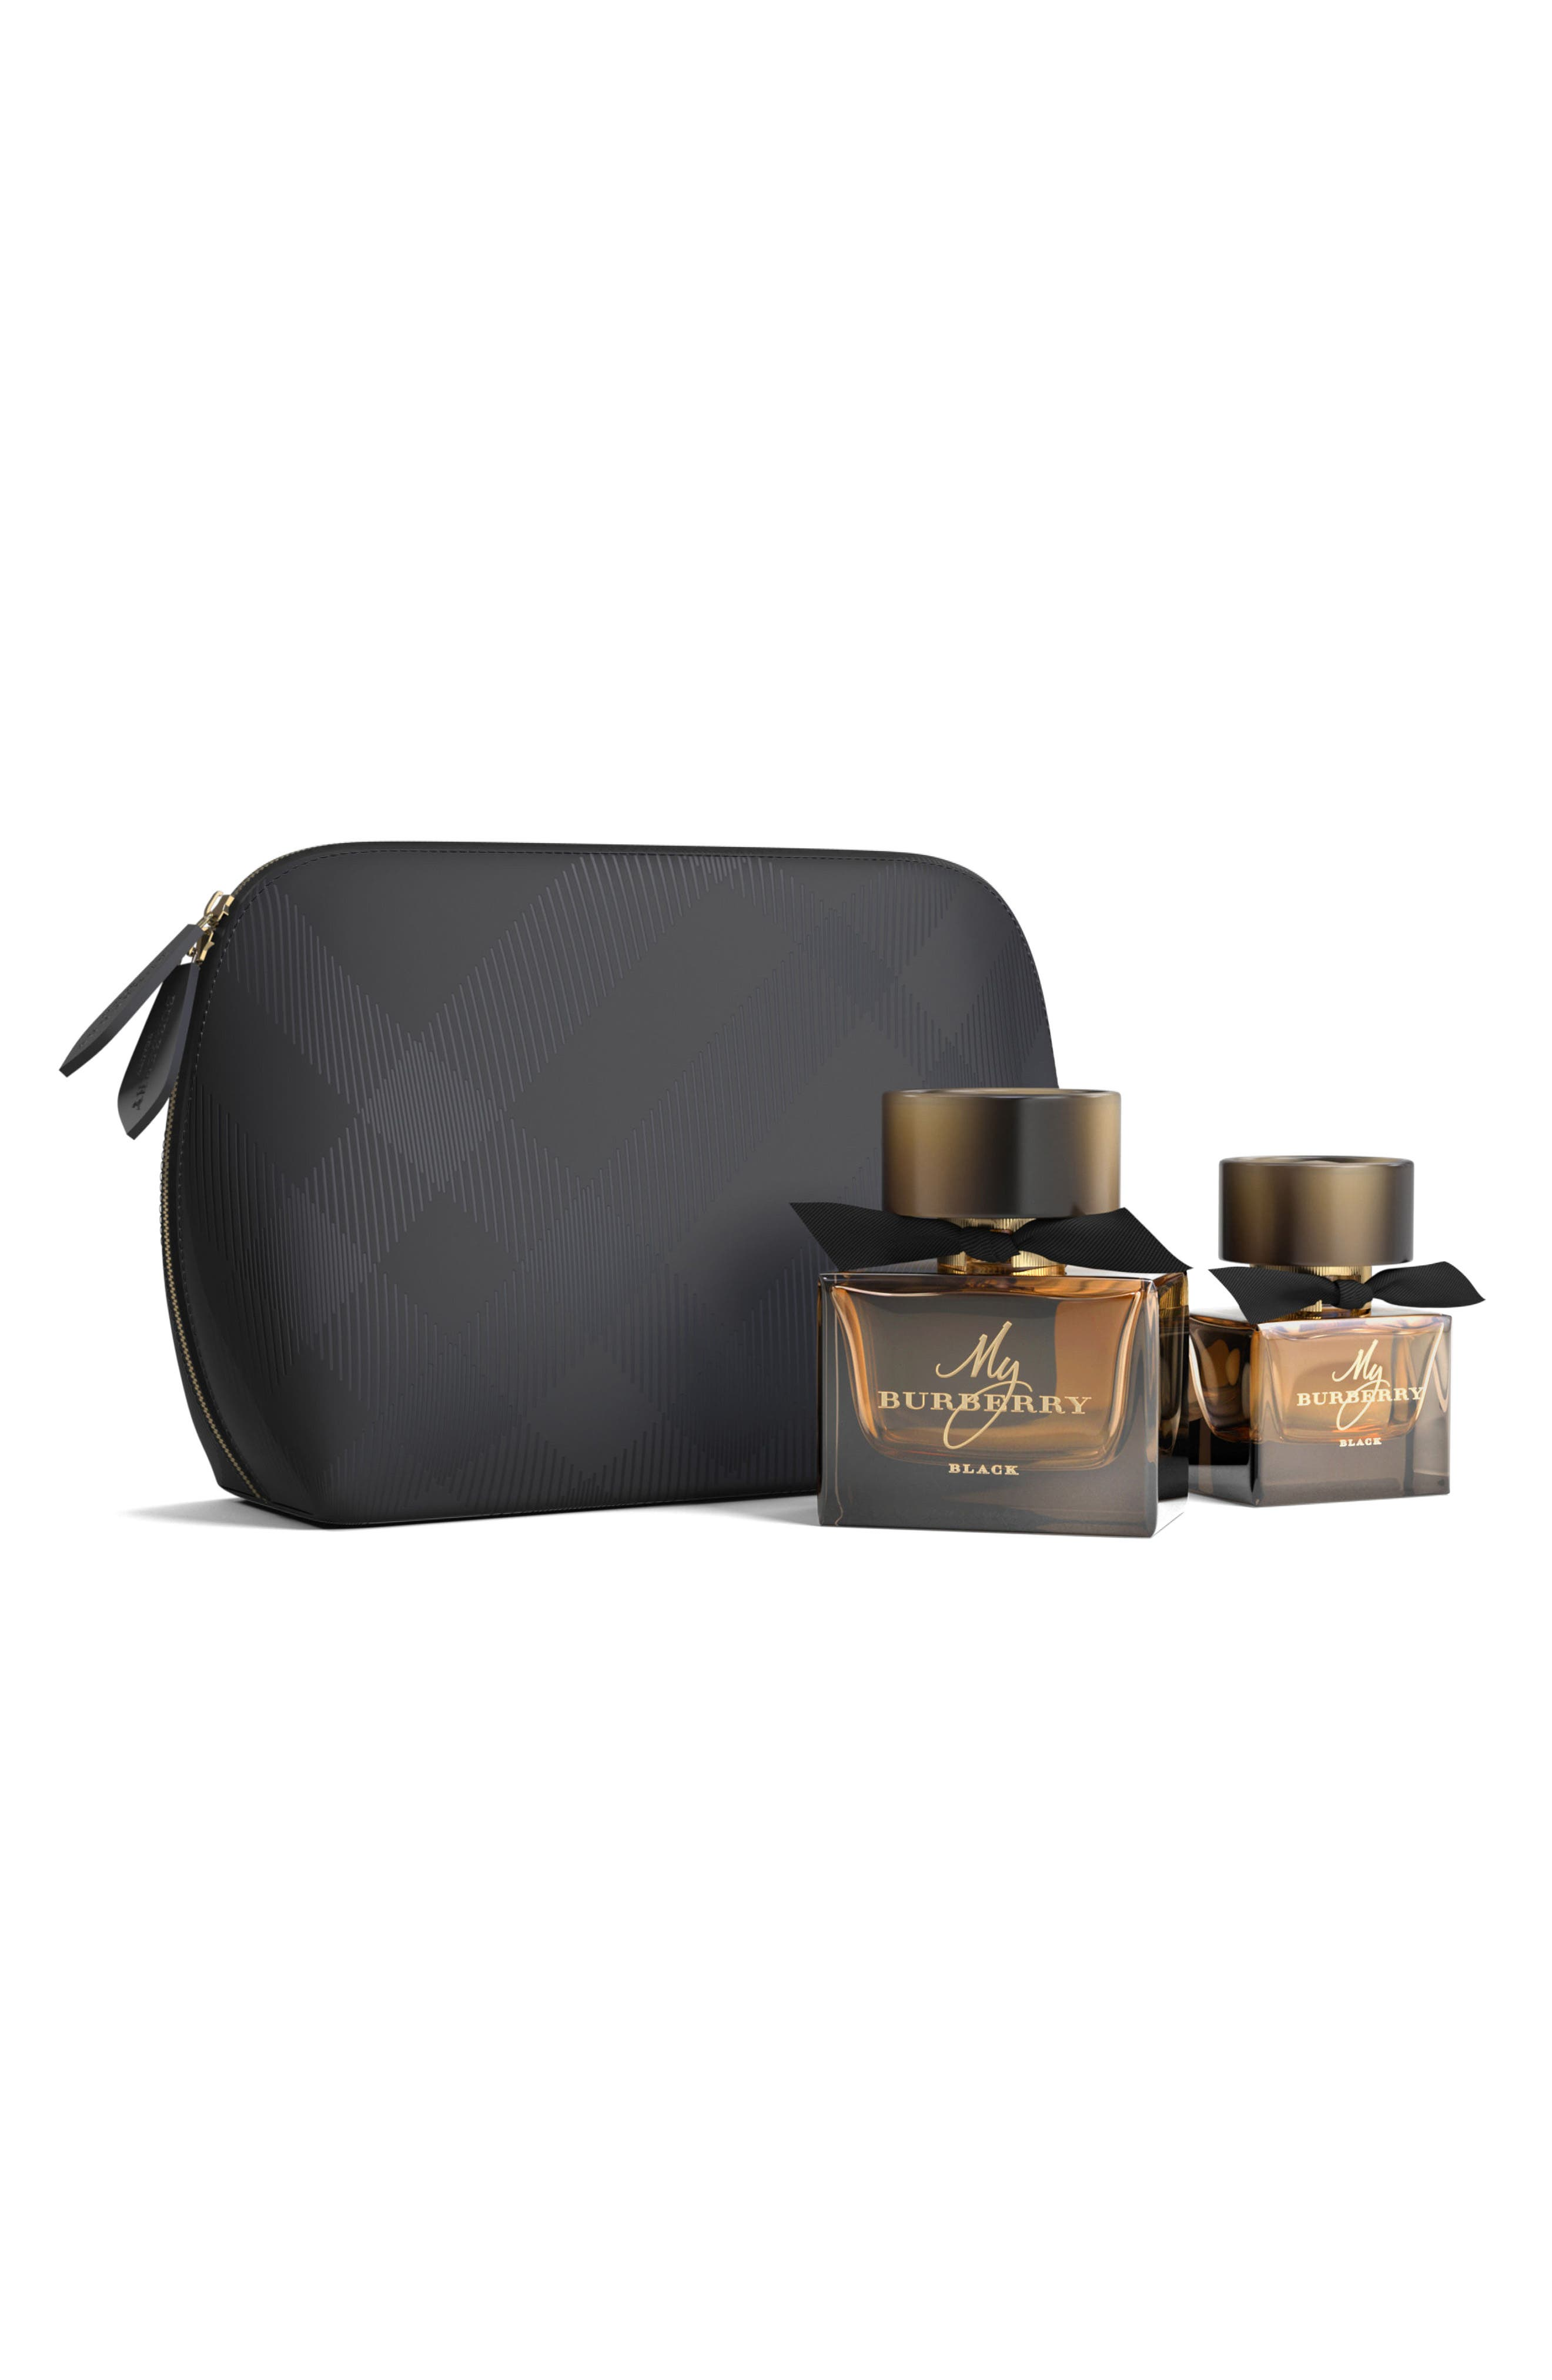 Burberry My Burberry Black Eau de Parfum Set